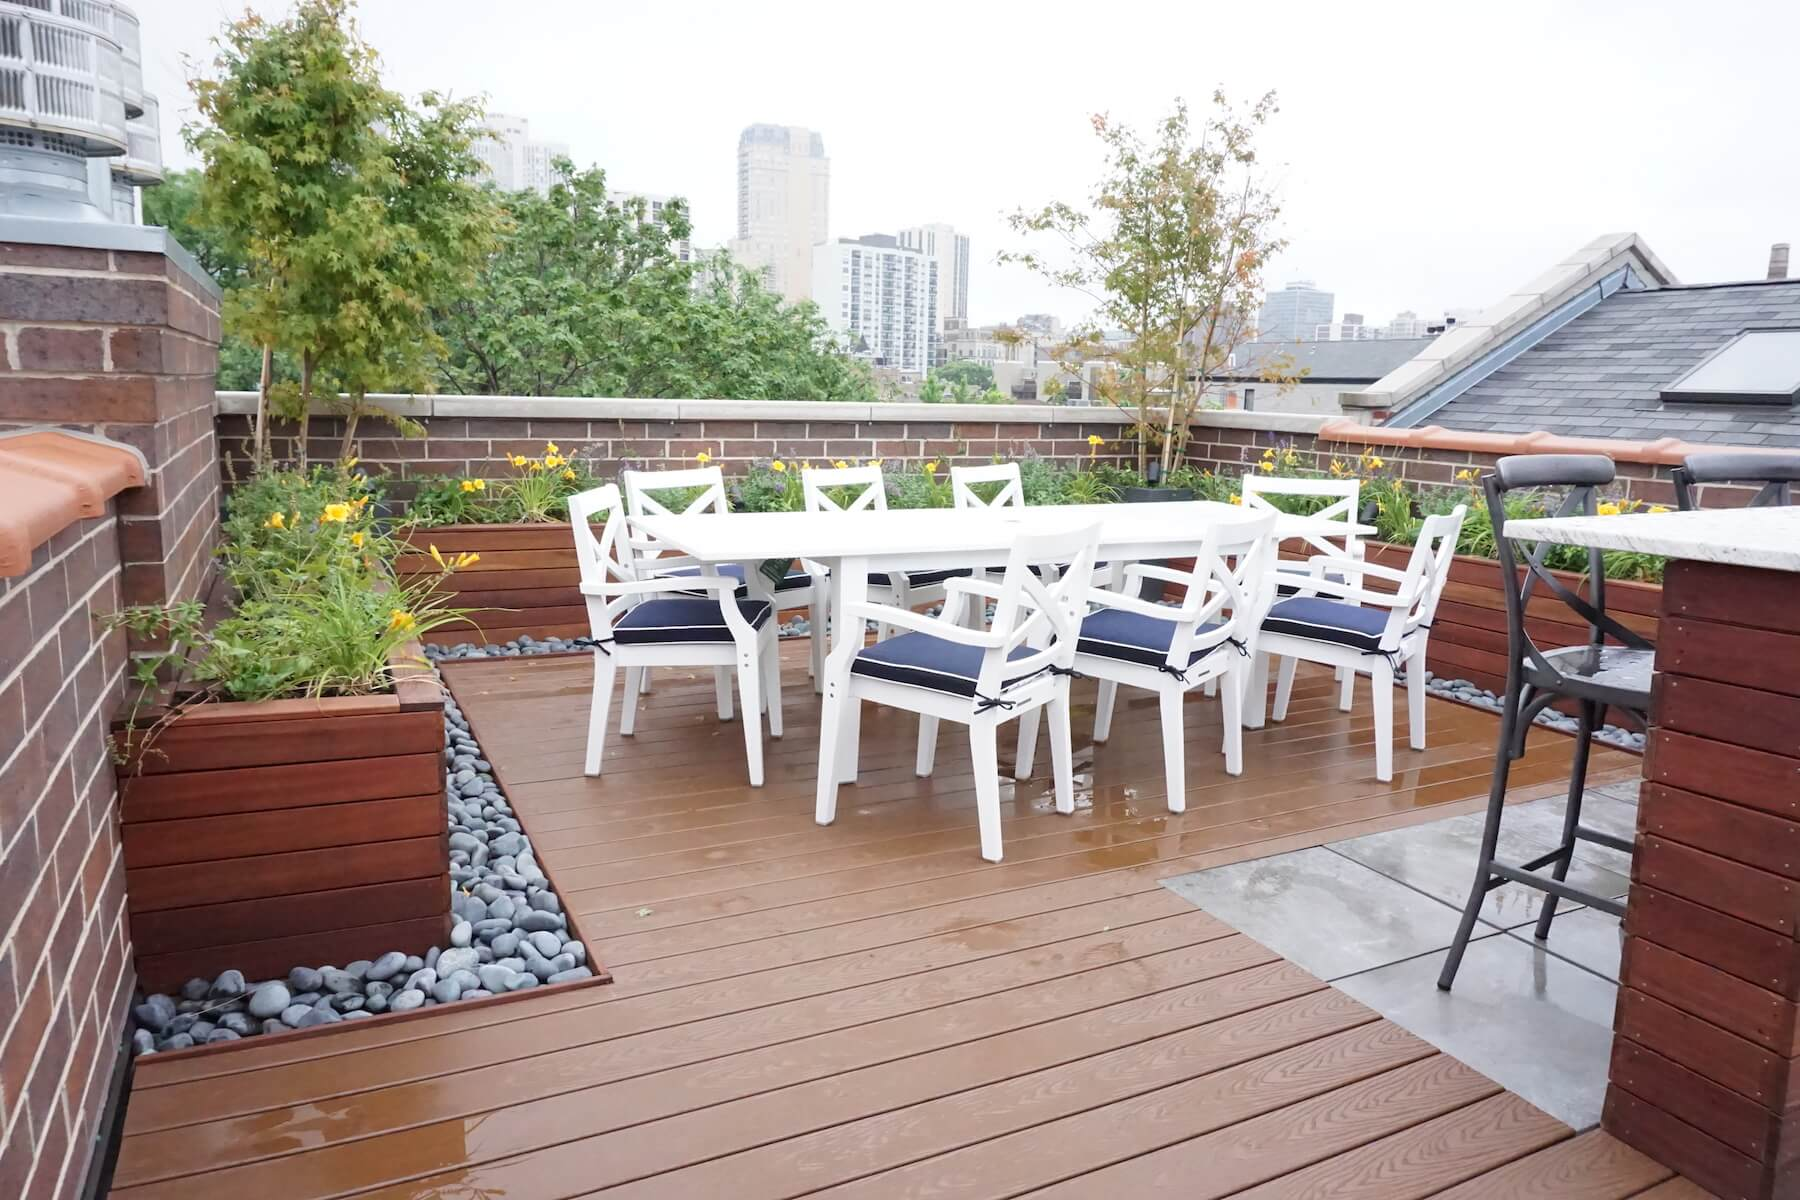 Rooftop Dining Area With Built-In Planters